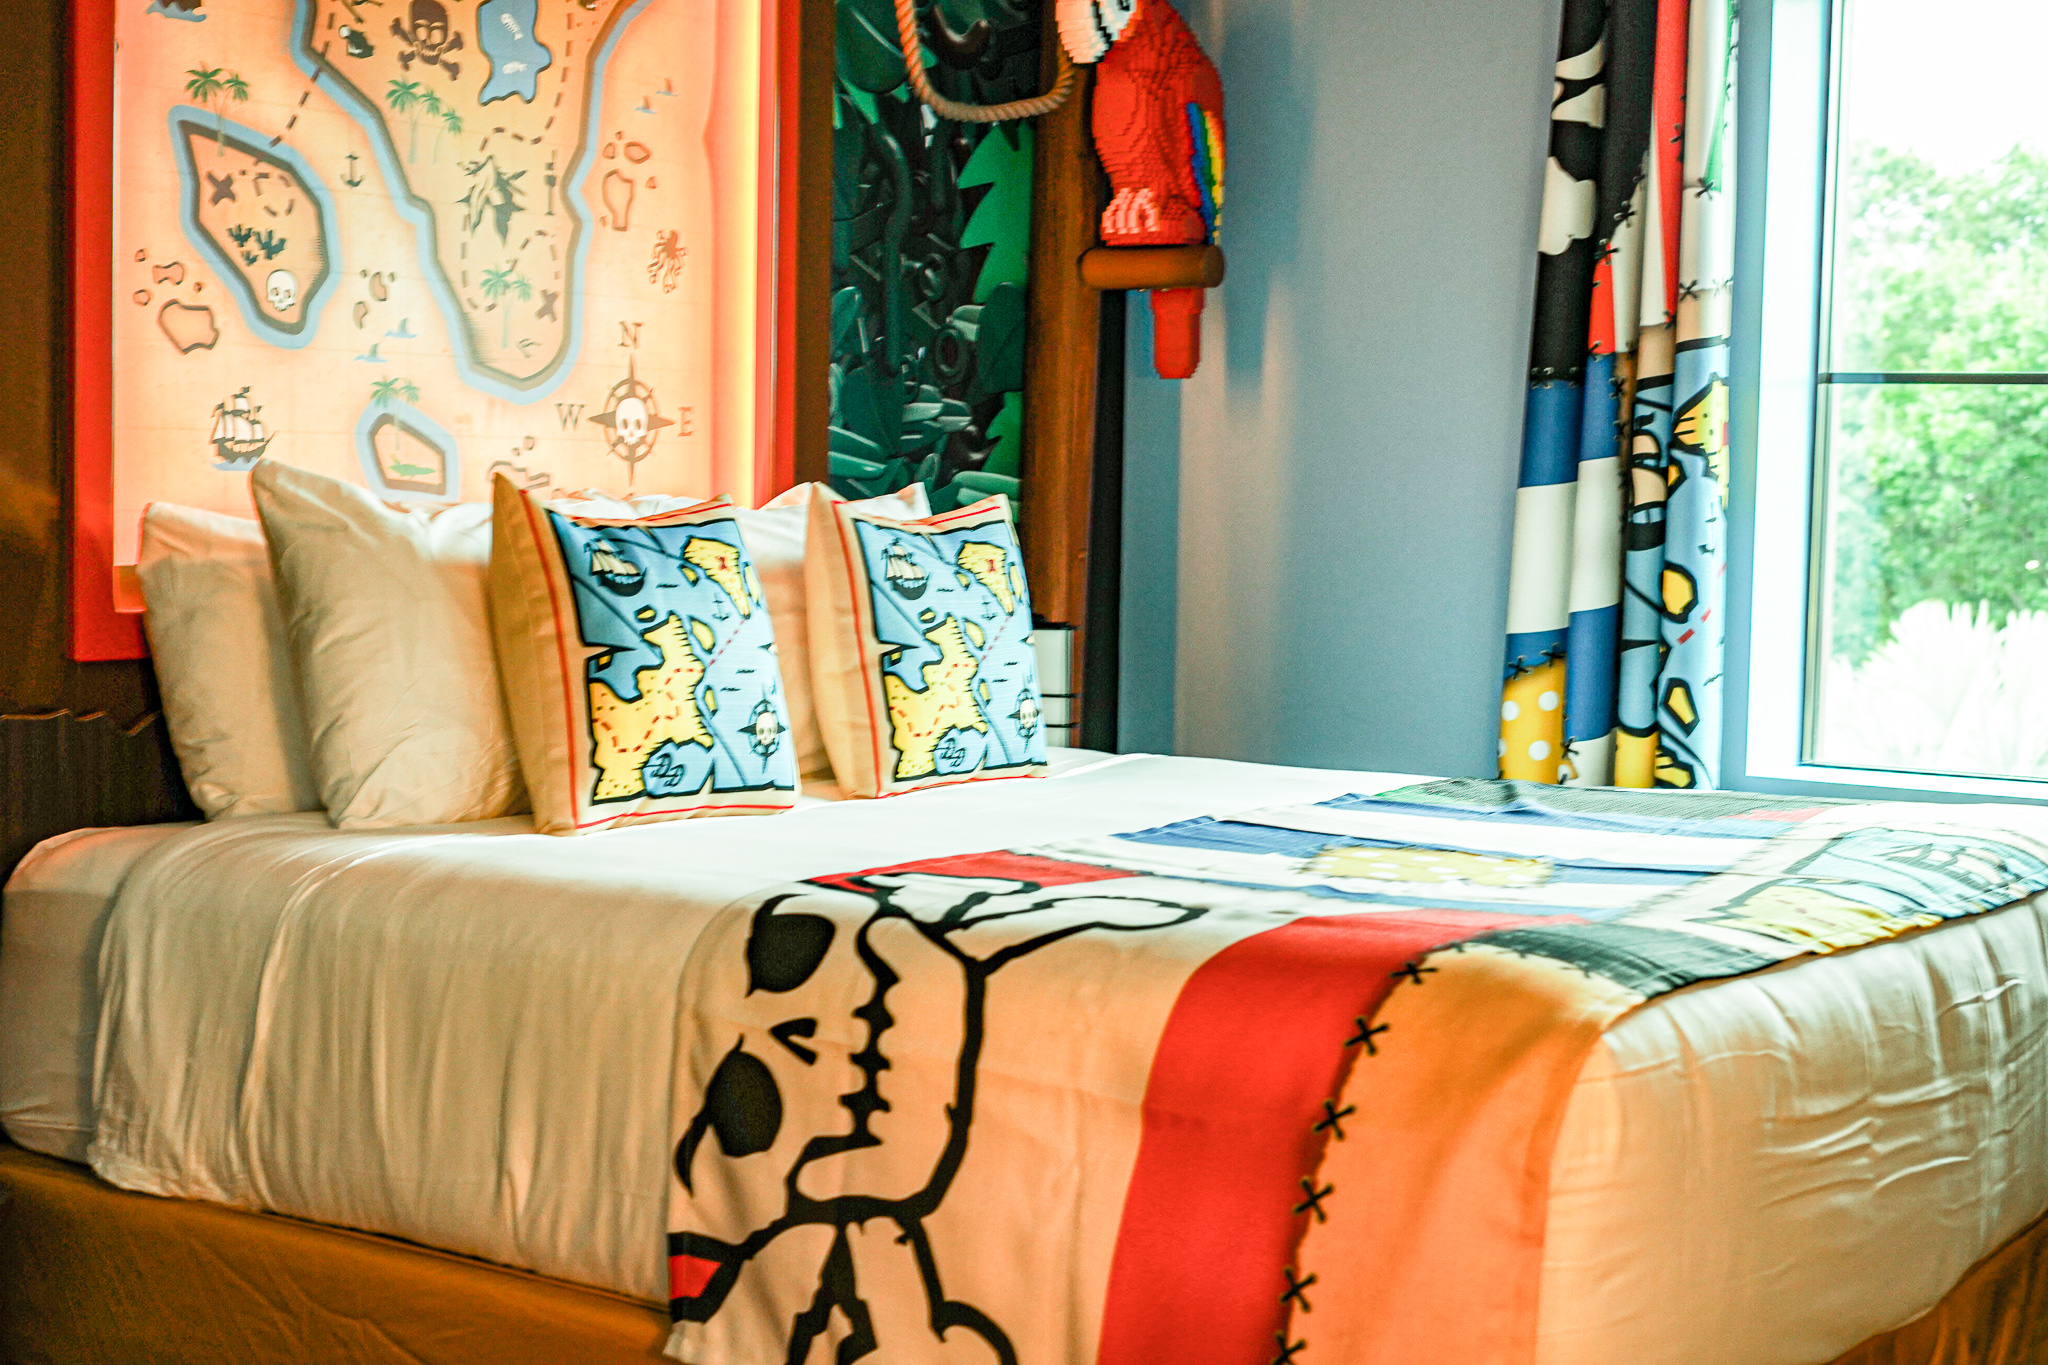 Hotel bed with lego themed bedding and decor.   A Guide to LEGOLAND Hotels in Florida